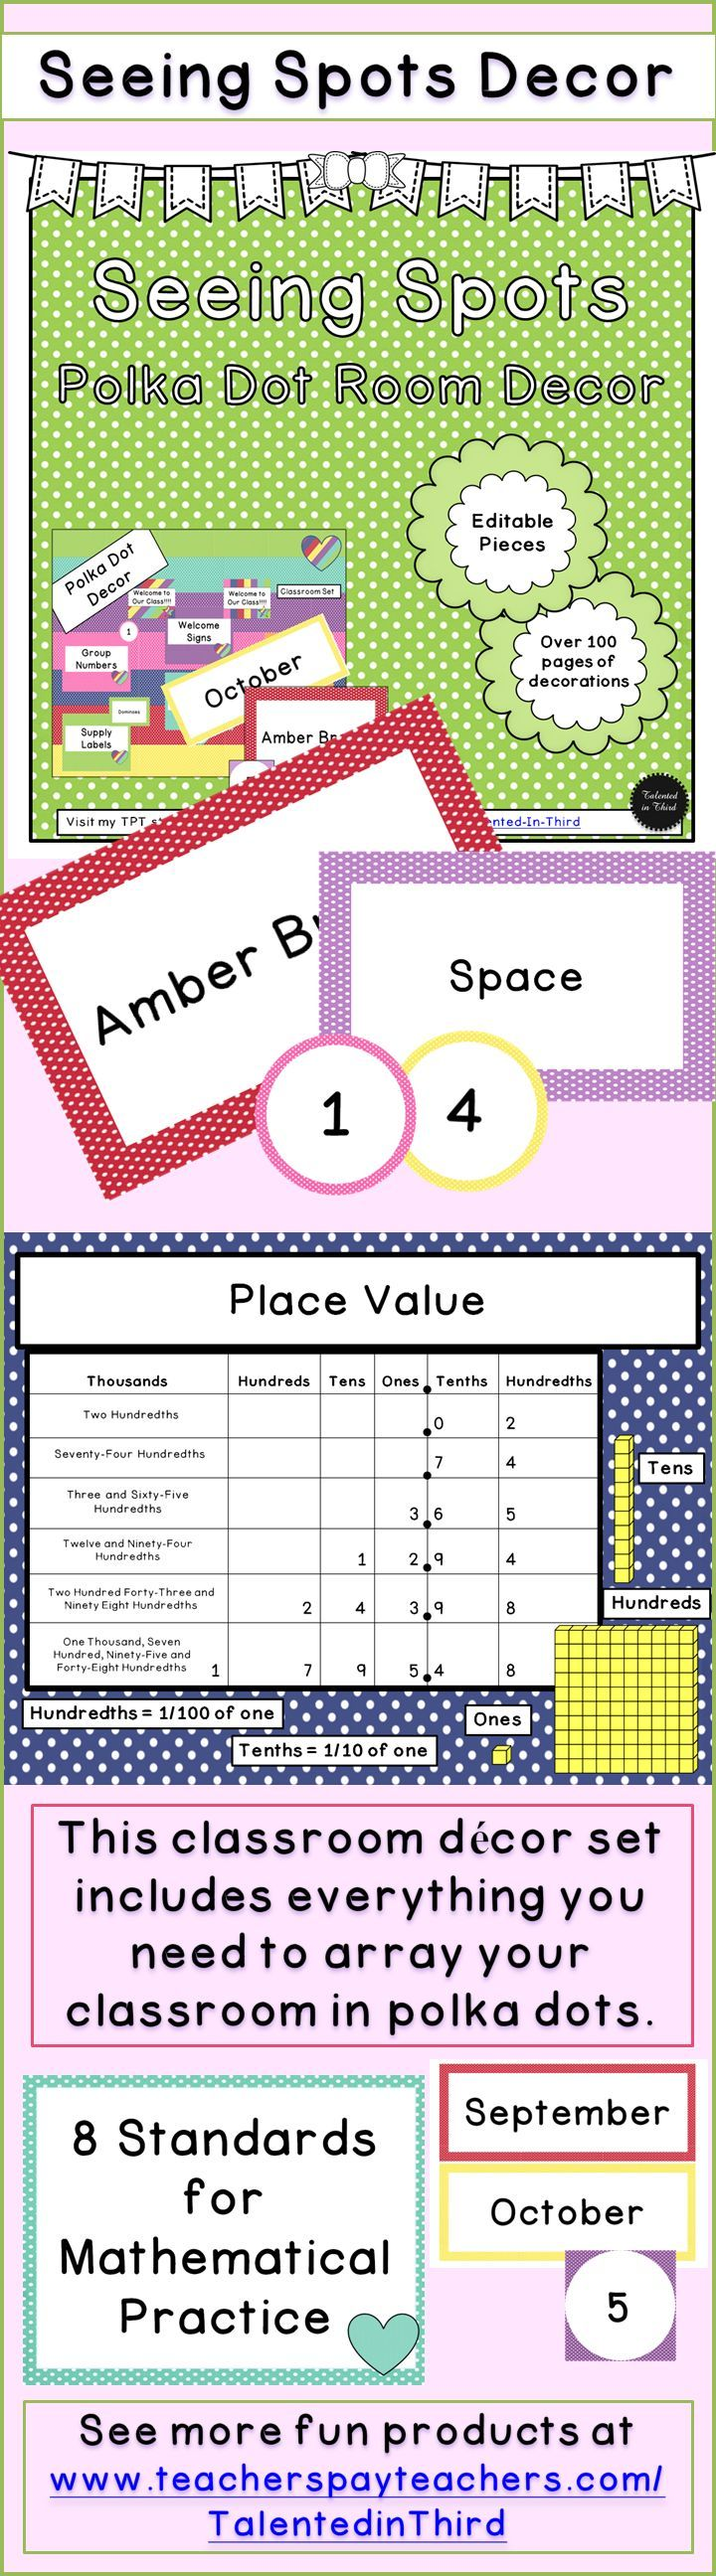 This classroom décor set includes everything you need to array your classroom in polka dots. It provides materials for your library, an outside bulletin board, clock labels, table labels or desk labels, labels for all of your supplies, labels for all of your cupboards, all the materials for a classroom calendar, and materials for several inside bulletin boards.